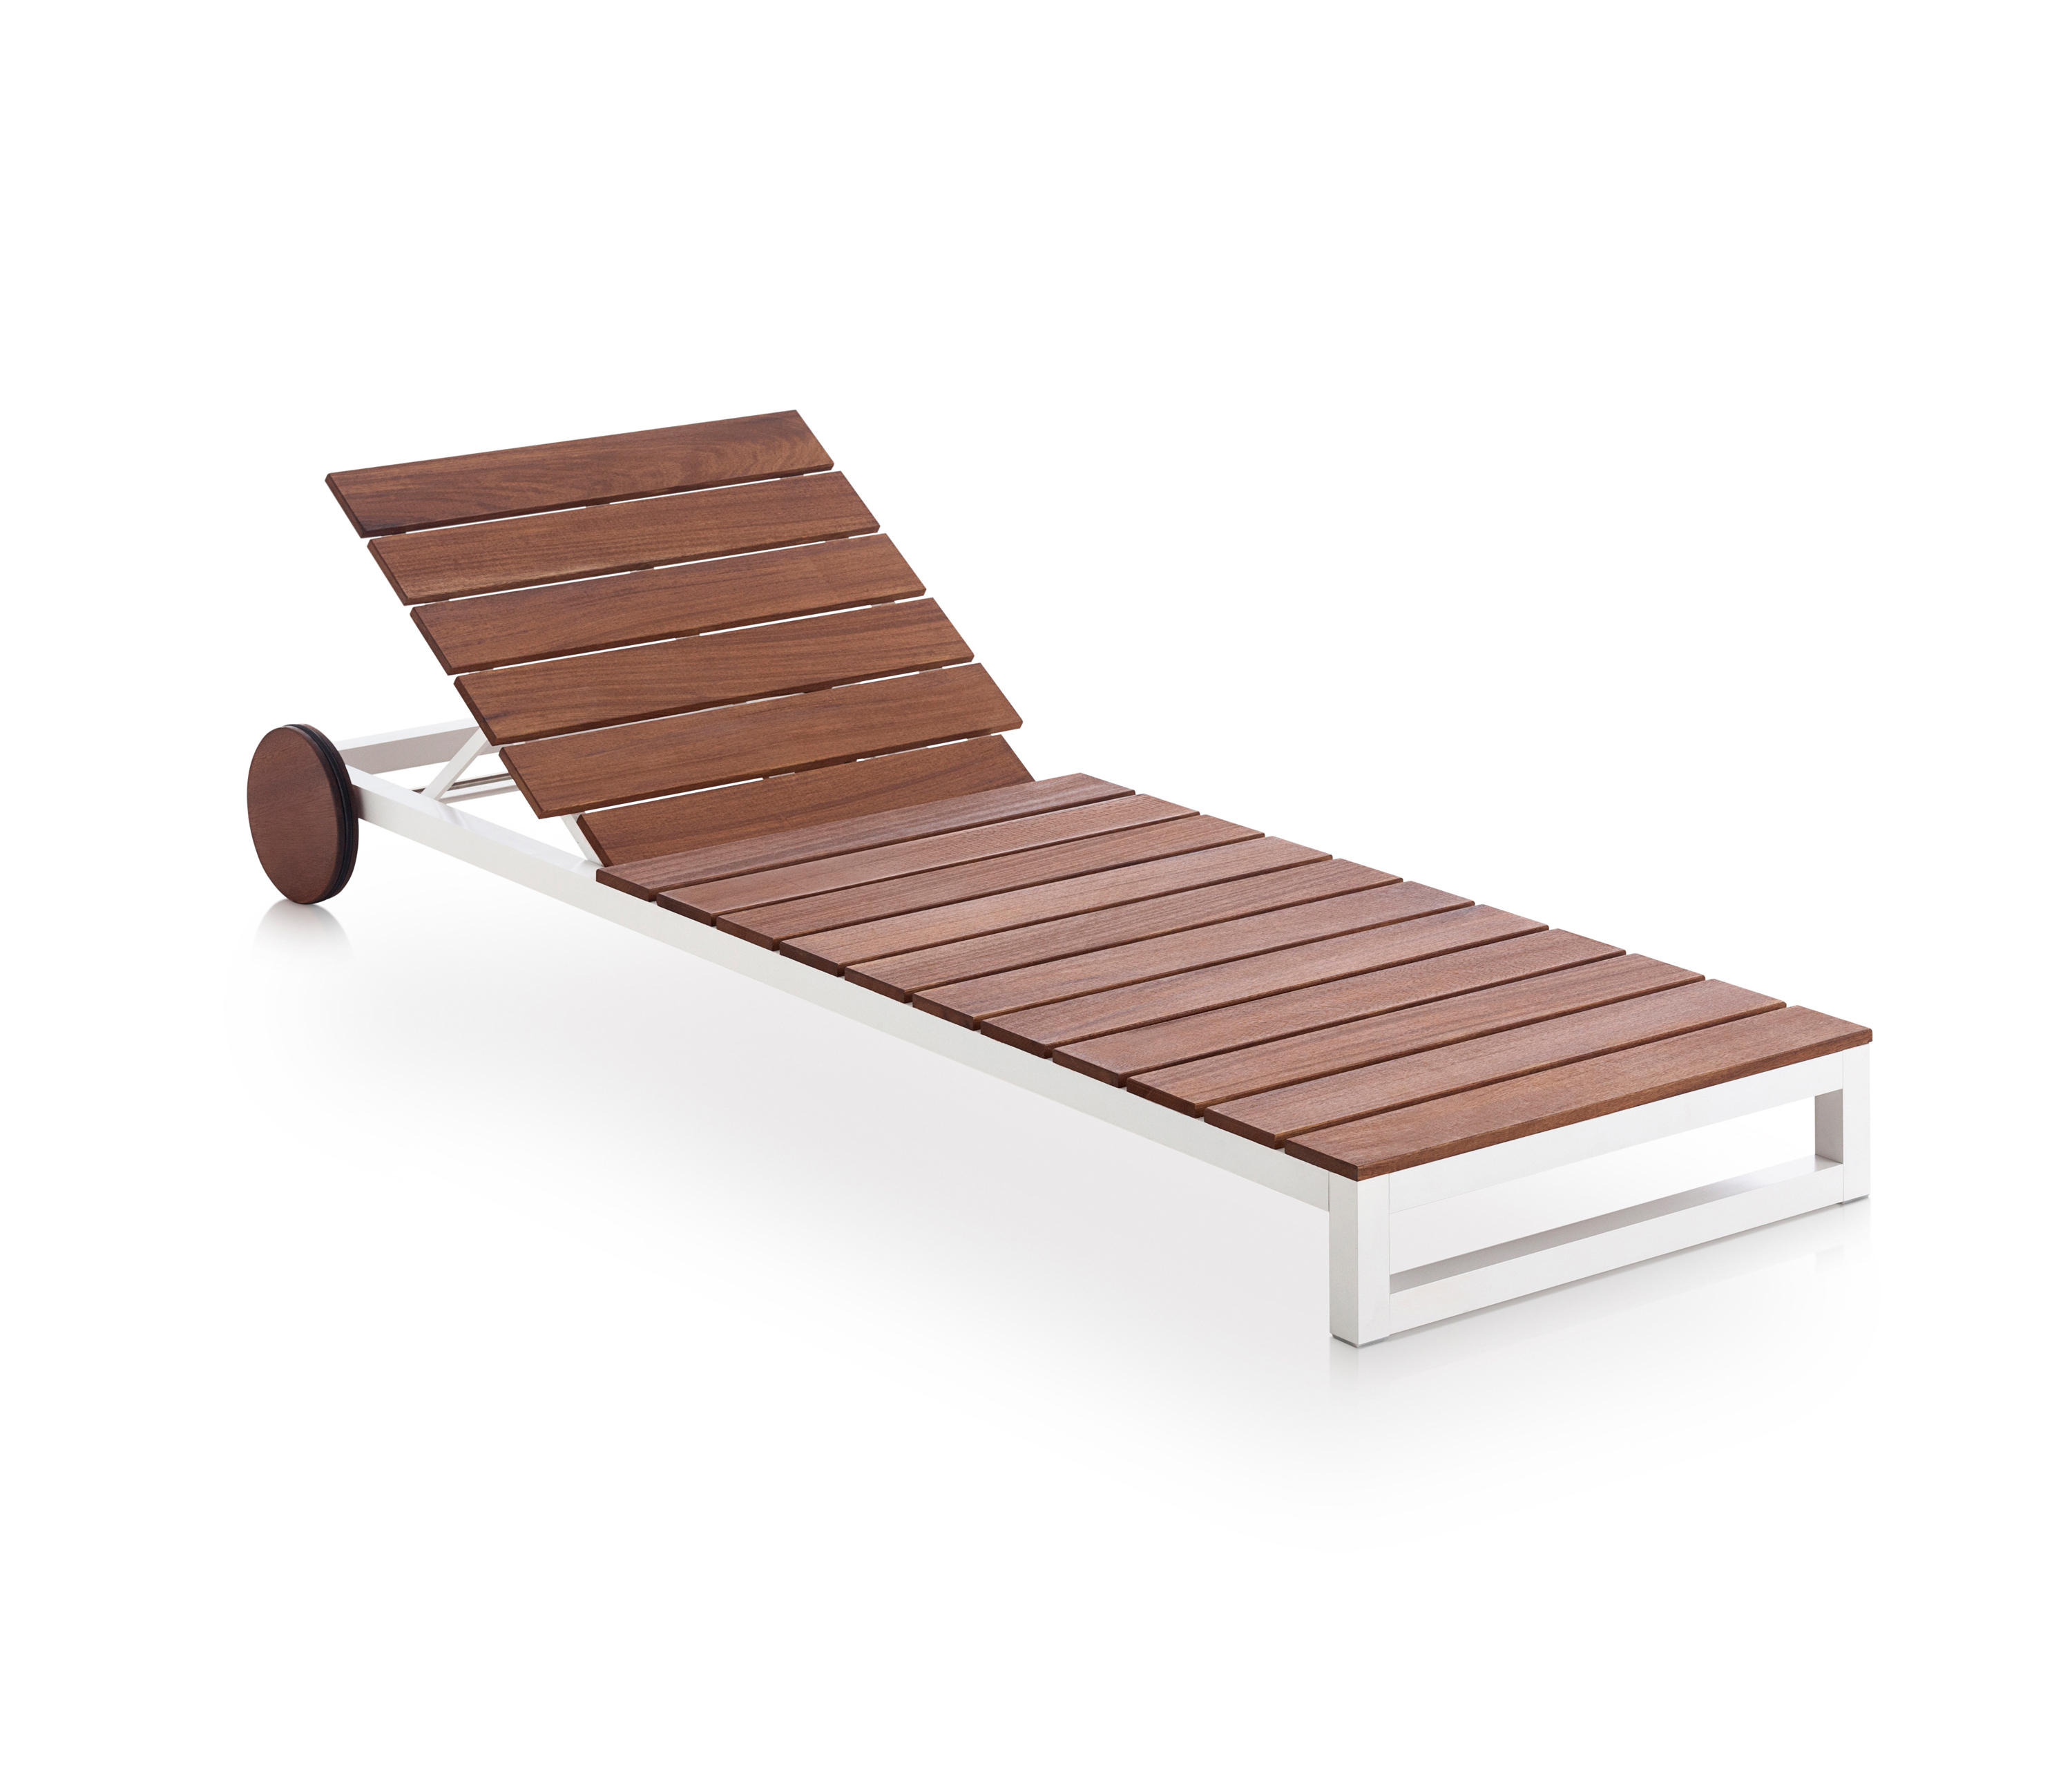 SALER SOFT TEAK CHAISELONGUE Sun loungers from GANDIABLASCO